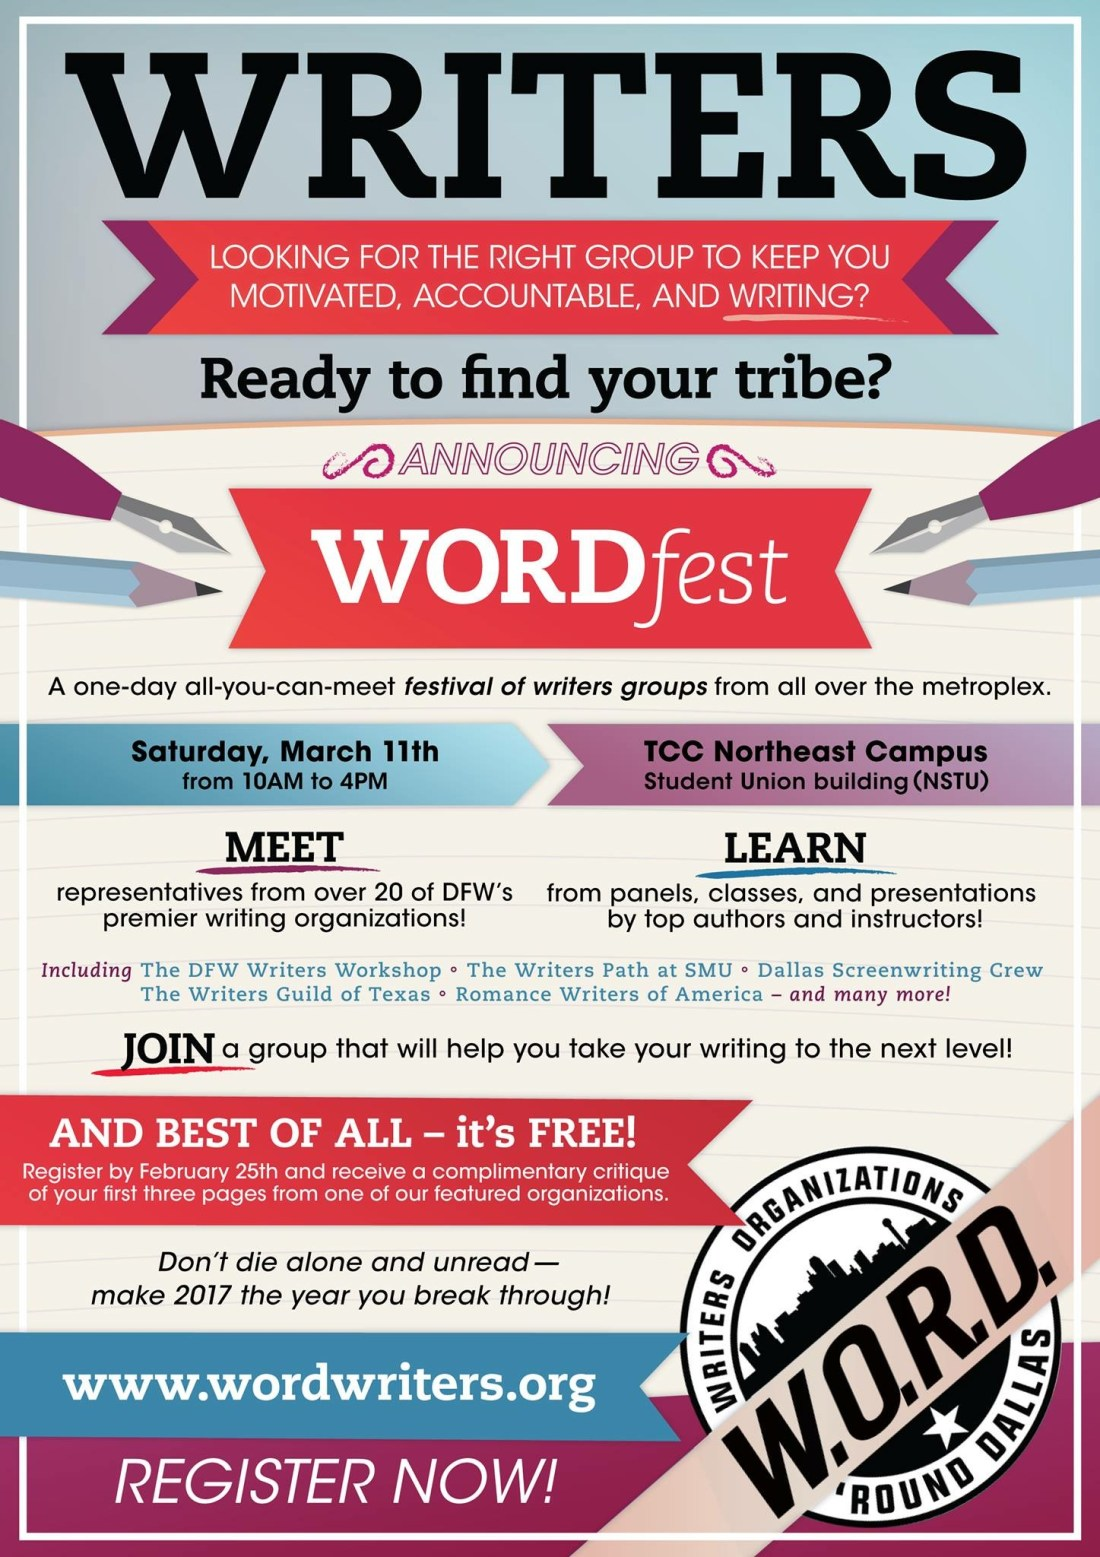 Wordfest – A free all-you-can-meet festival of DFW-area writing groups!